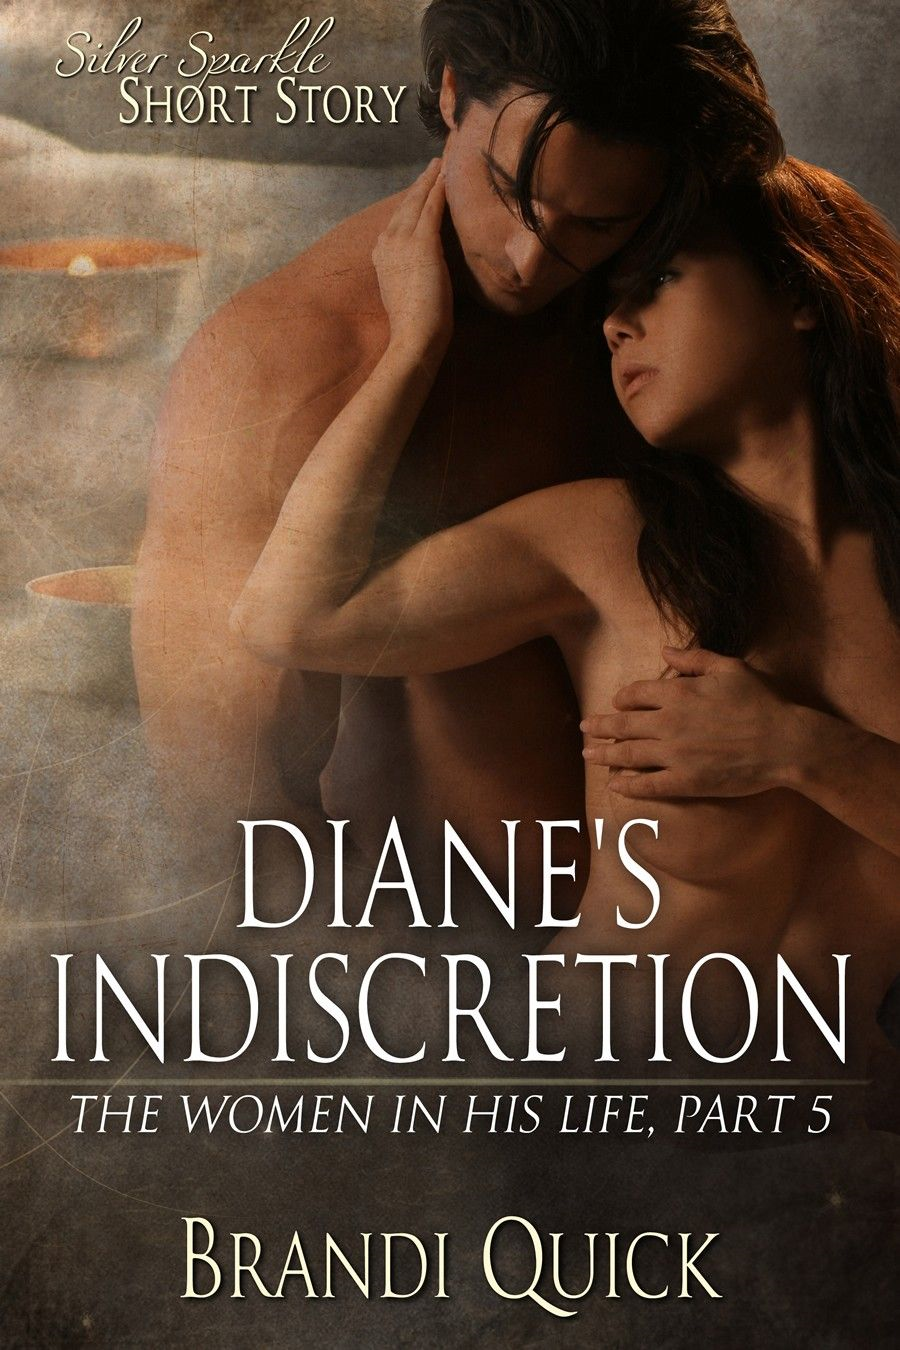 Diane's Indescretion (The Women in His Life #5)